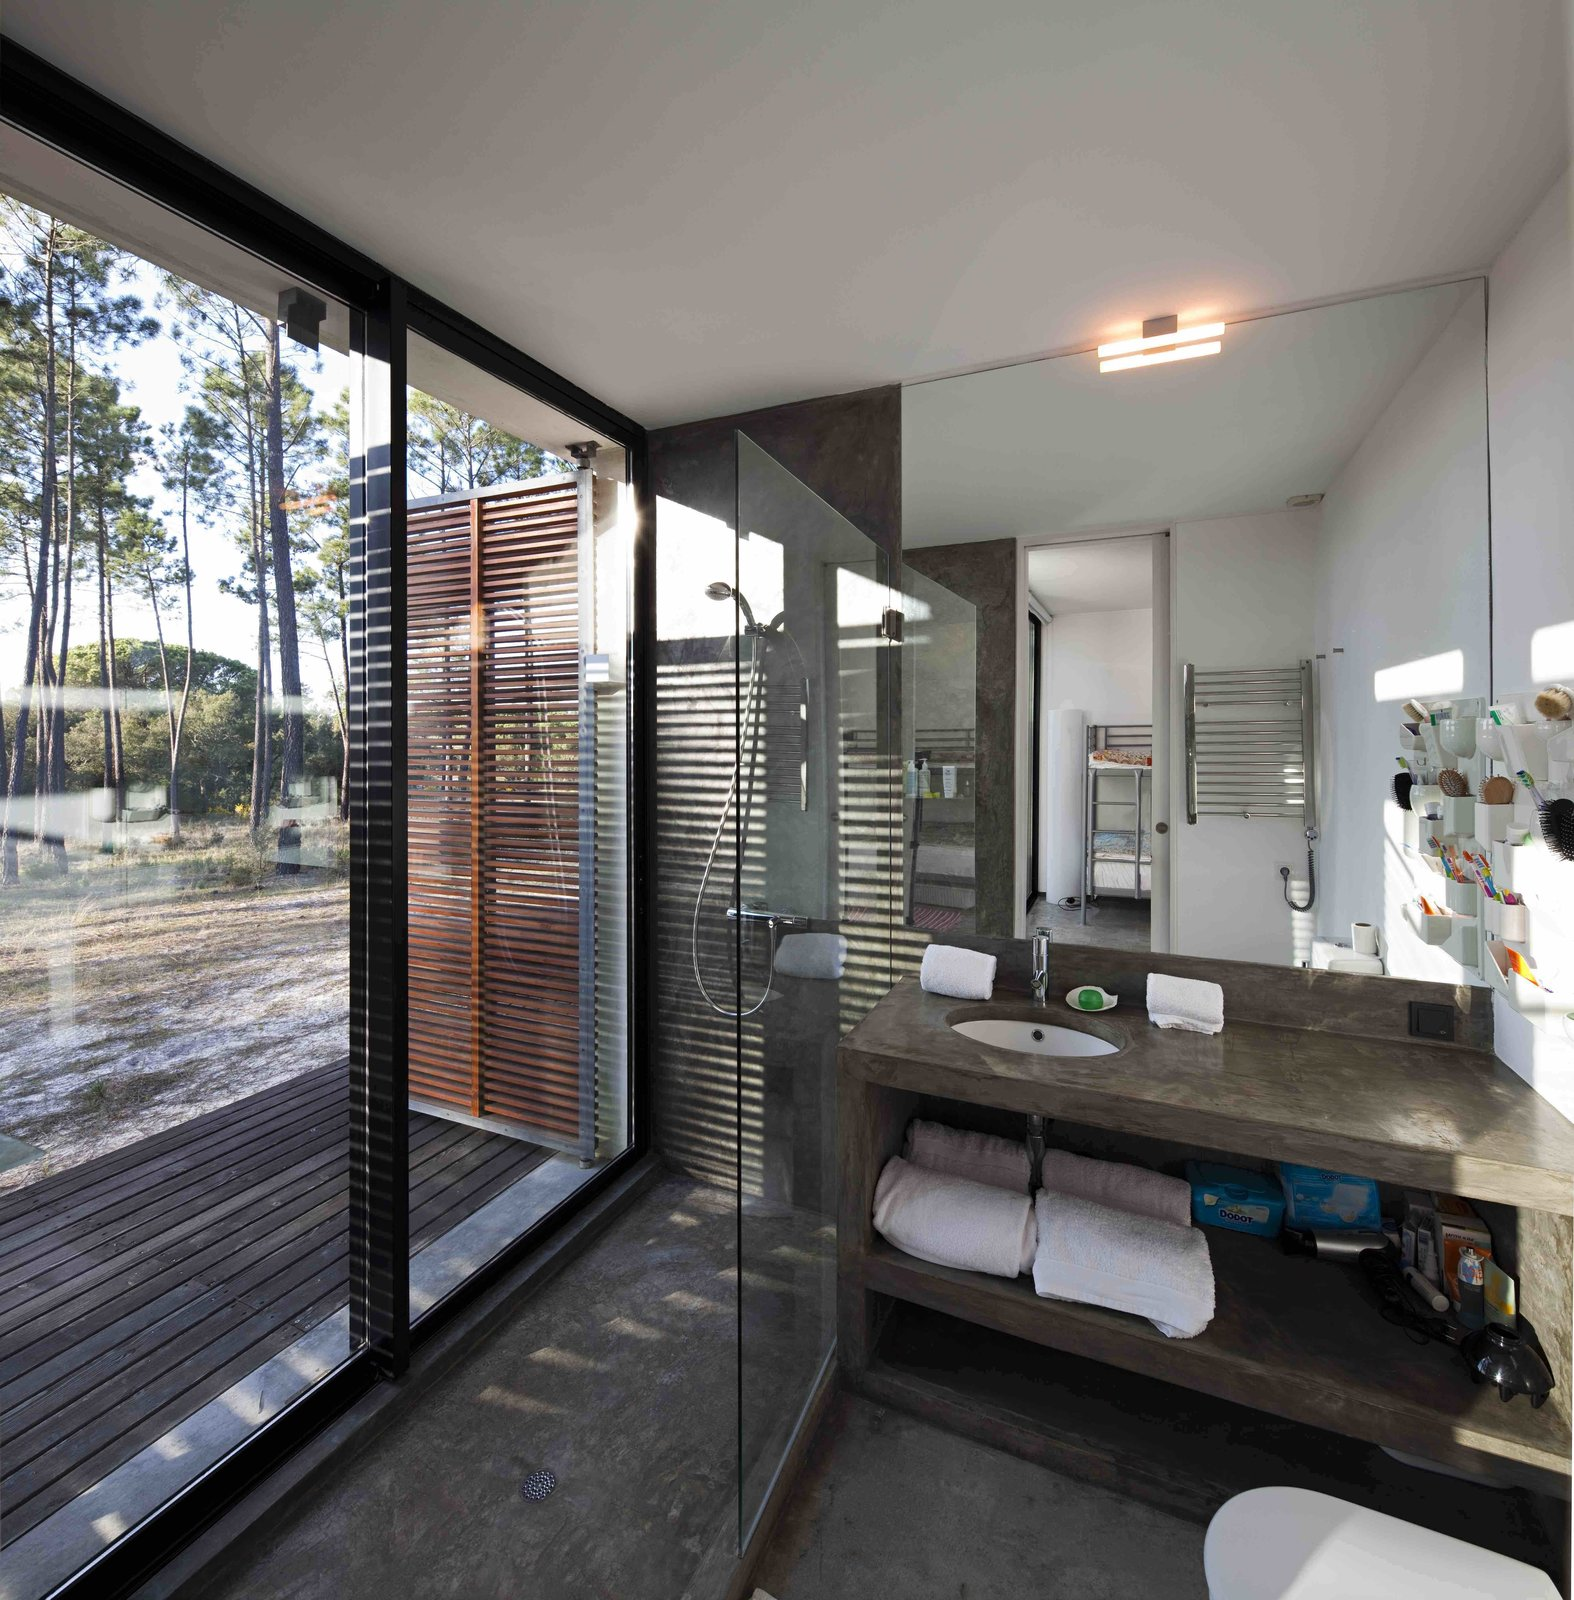 Bath Room, Concrete Counter, Concrete Floor, Open Shower, Wall Lighting, and Undermount Sink  Photo 7 of 15 in Escape to a Light-Filled, Beach-Meets-Forest Retreat in Portugal